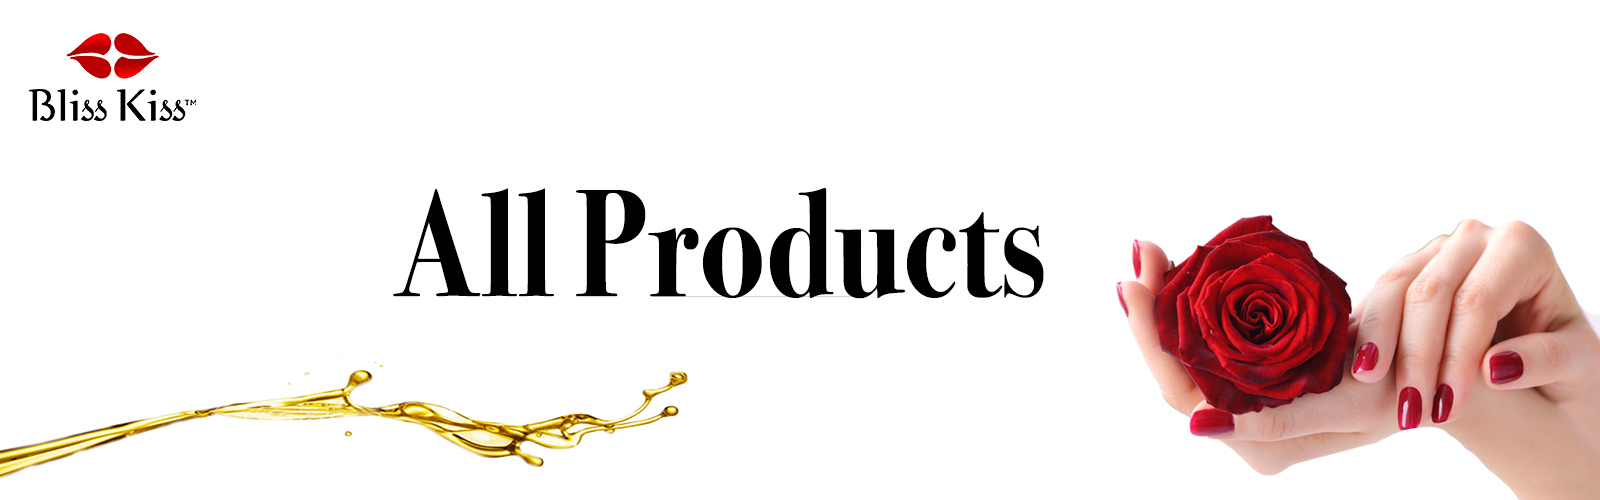 all-products.png